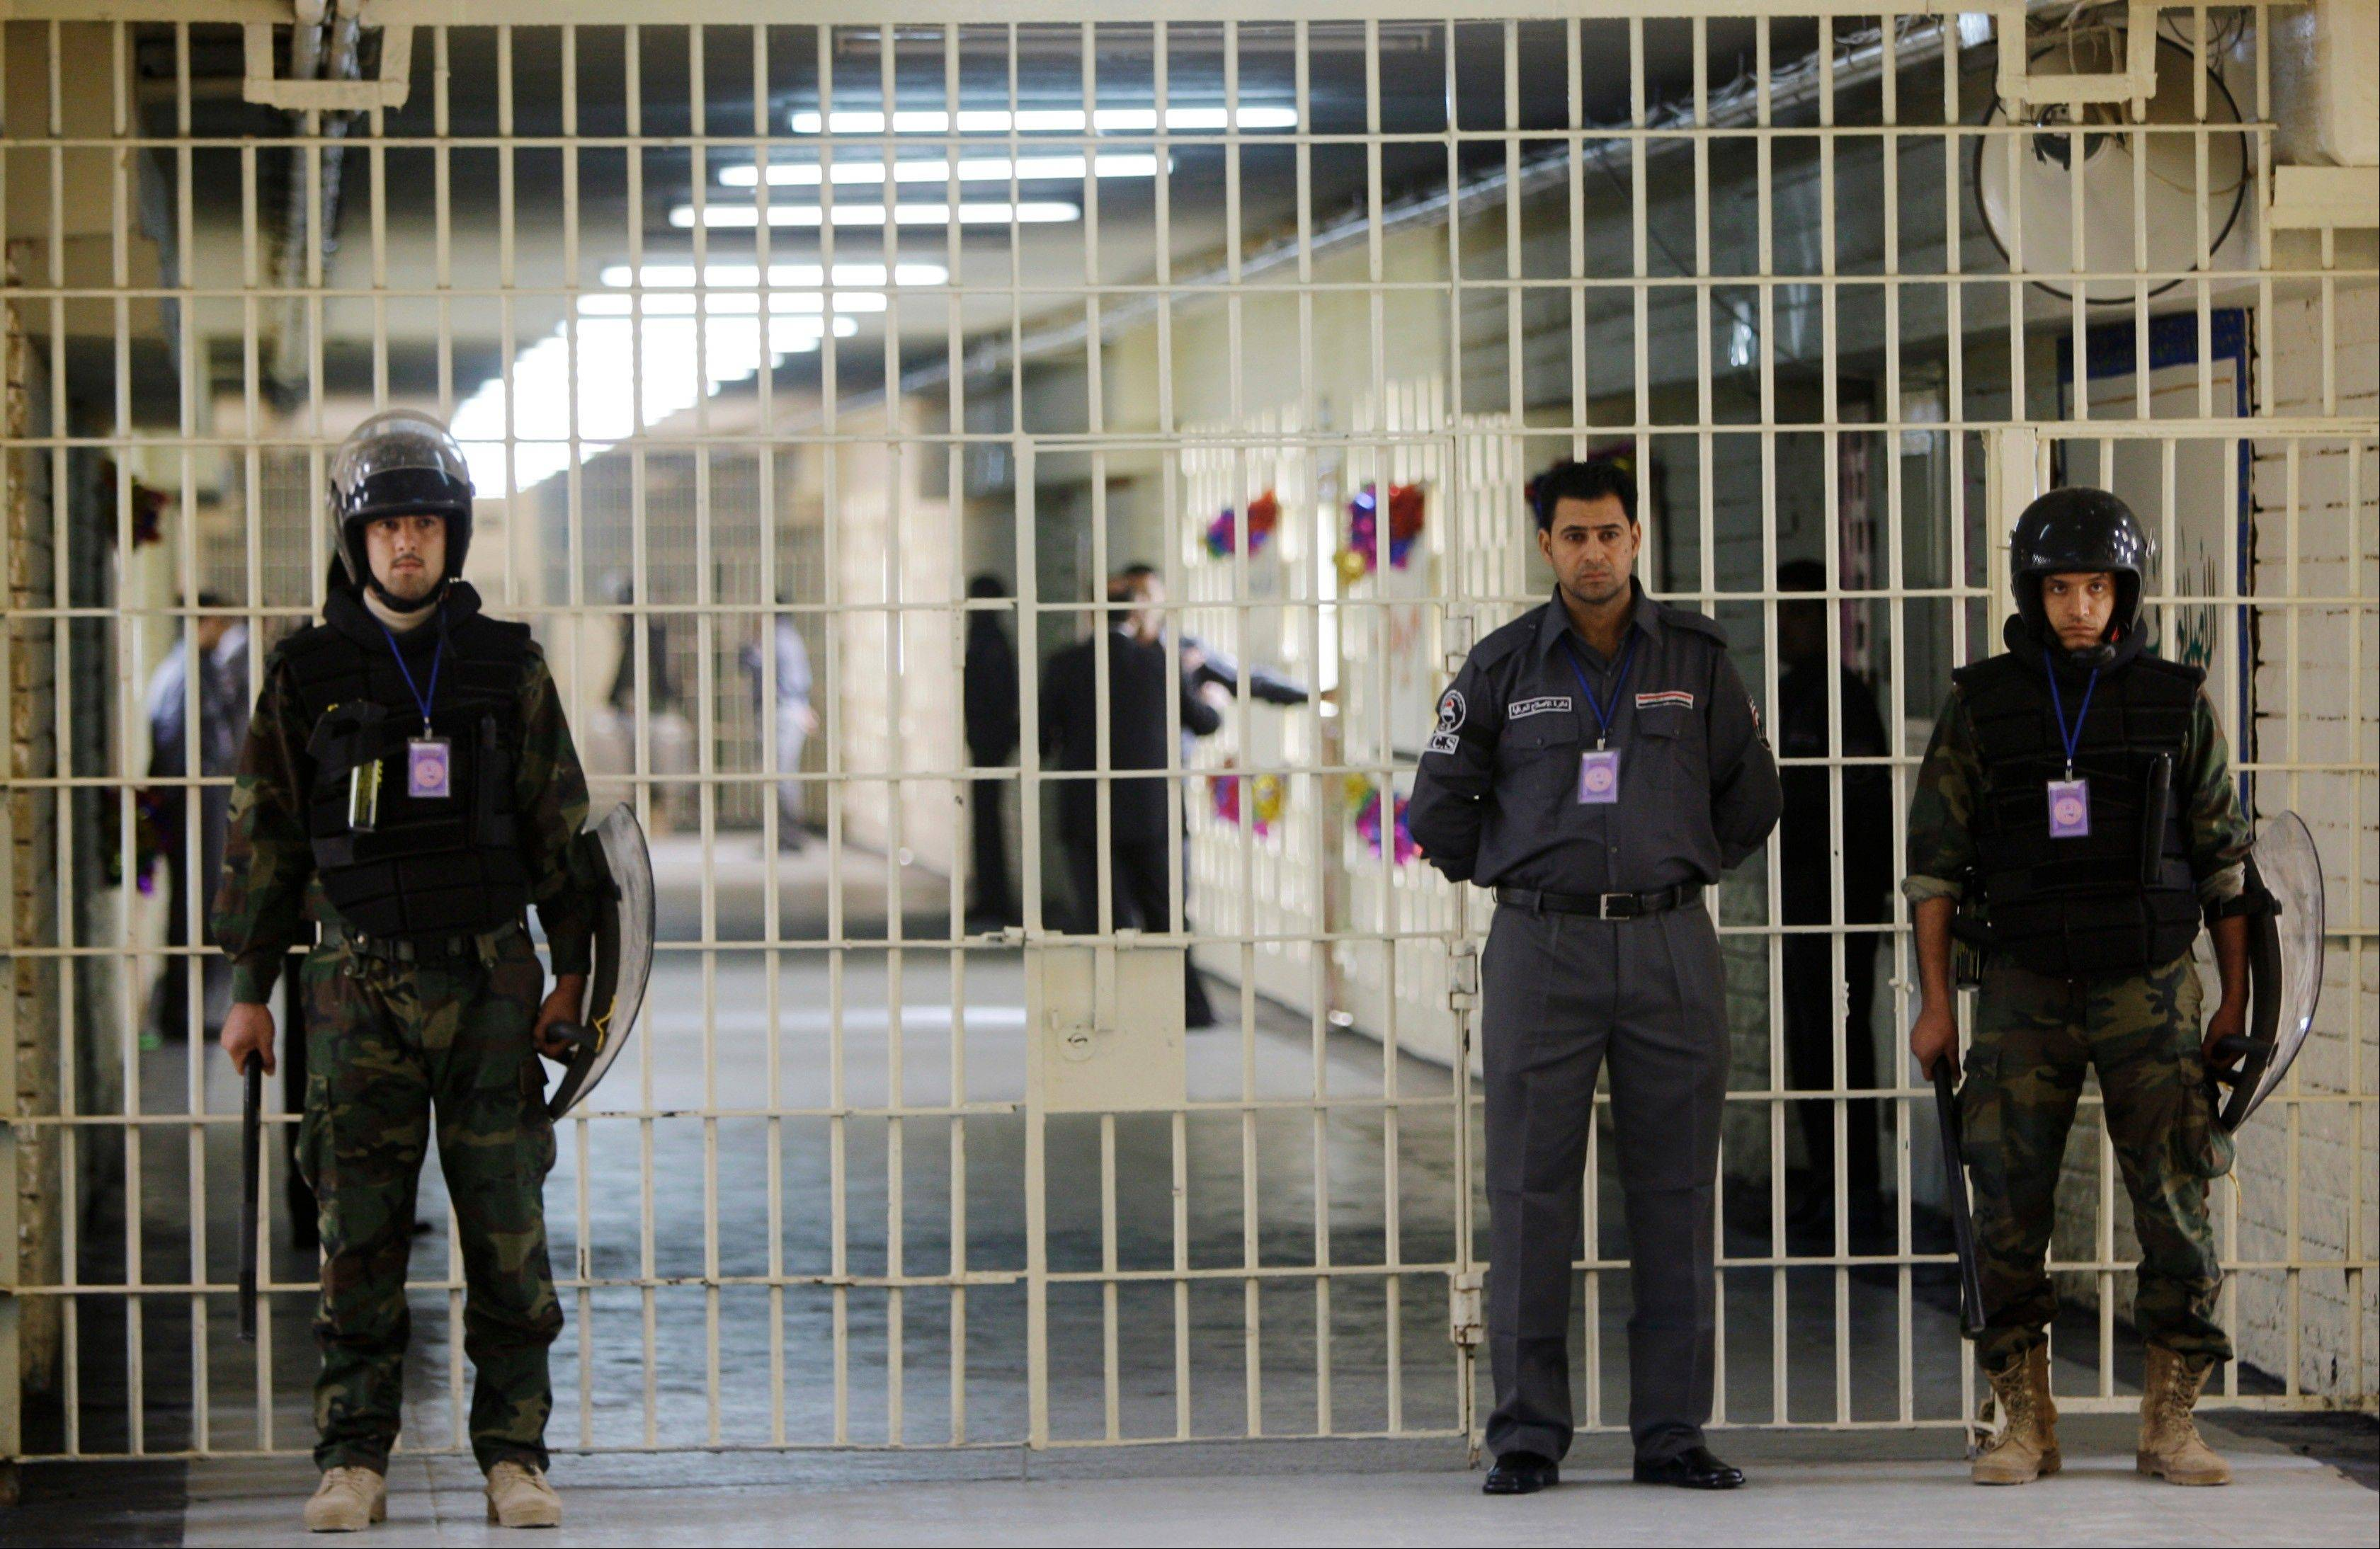 In this Feb. 21, 2009 file photo, guards stand at a cell block at the renovated Abu Ghraib prison, now renamed Baghdad Central Prison and run by Iraqis in Baghdad. Late-night jailbreak attempts at two major prisons outside Baghdad have killed dozens, including at least 25 members of Iraq�s security forces who battled militants armed with car bombs, mortars and machine guns, officials said Monday.